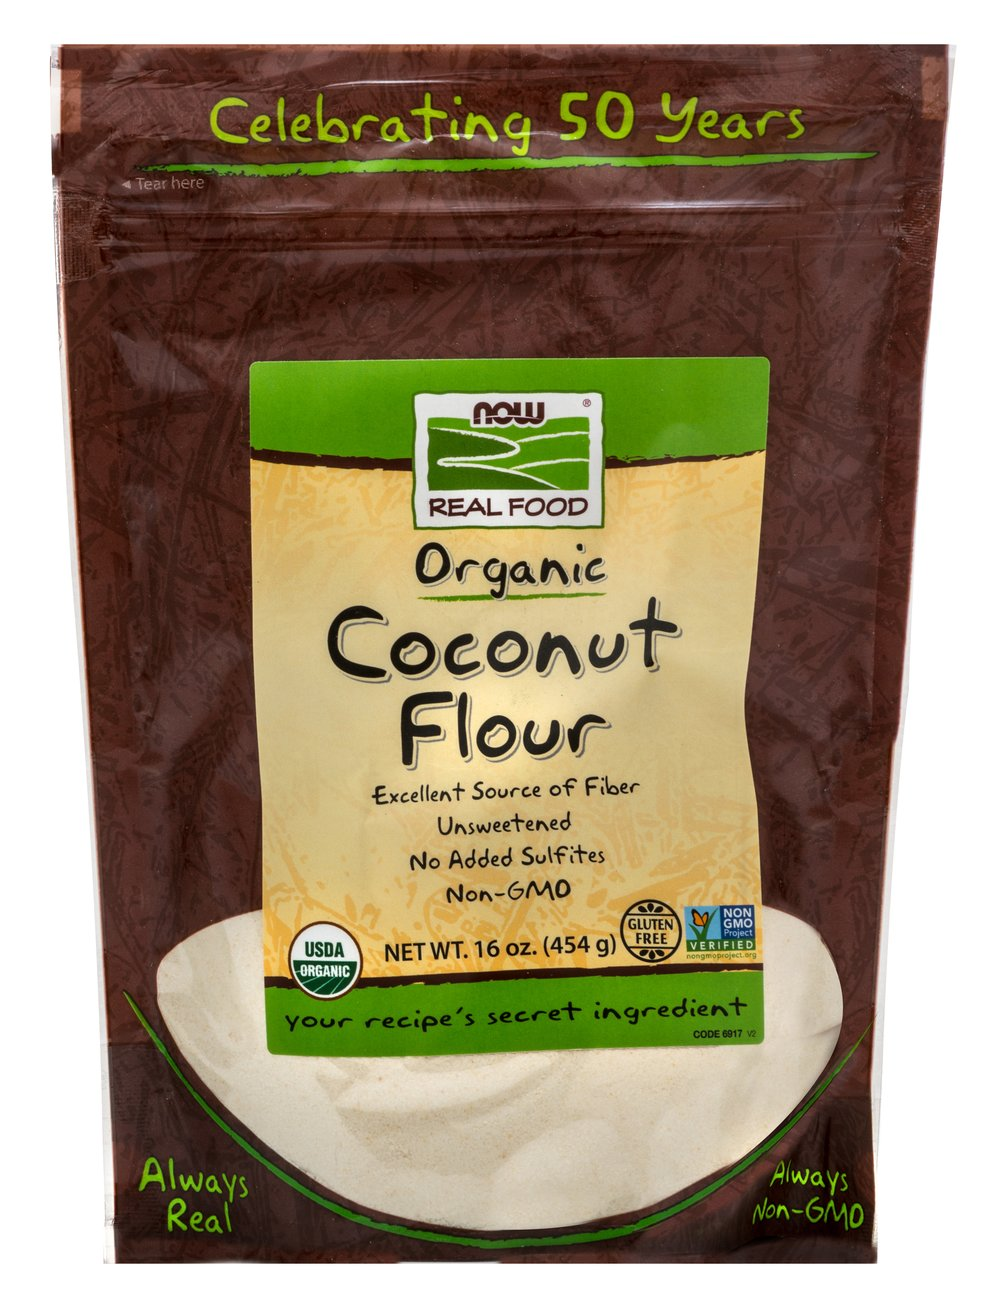 Organic Coconut Flour Thumbnail Alternate Bottle View